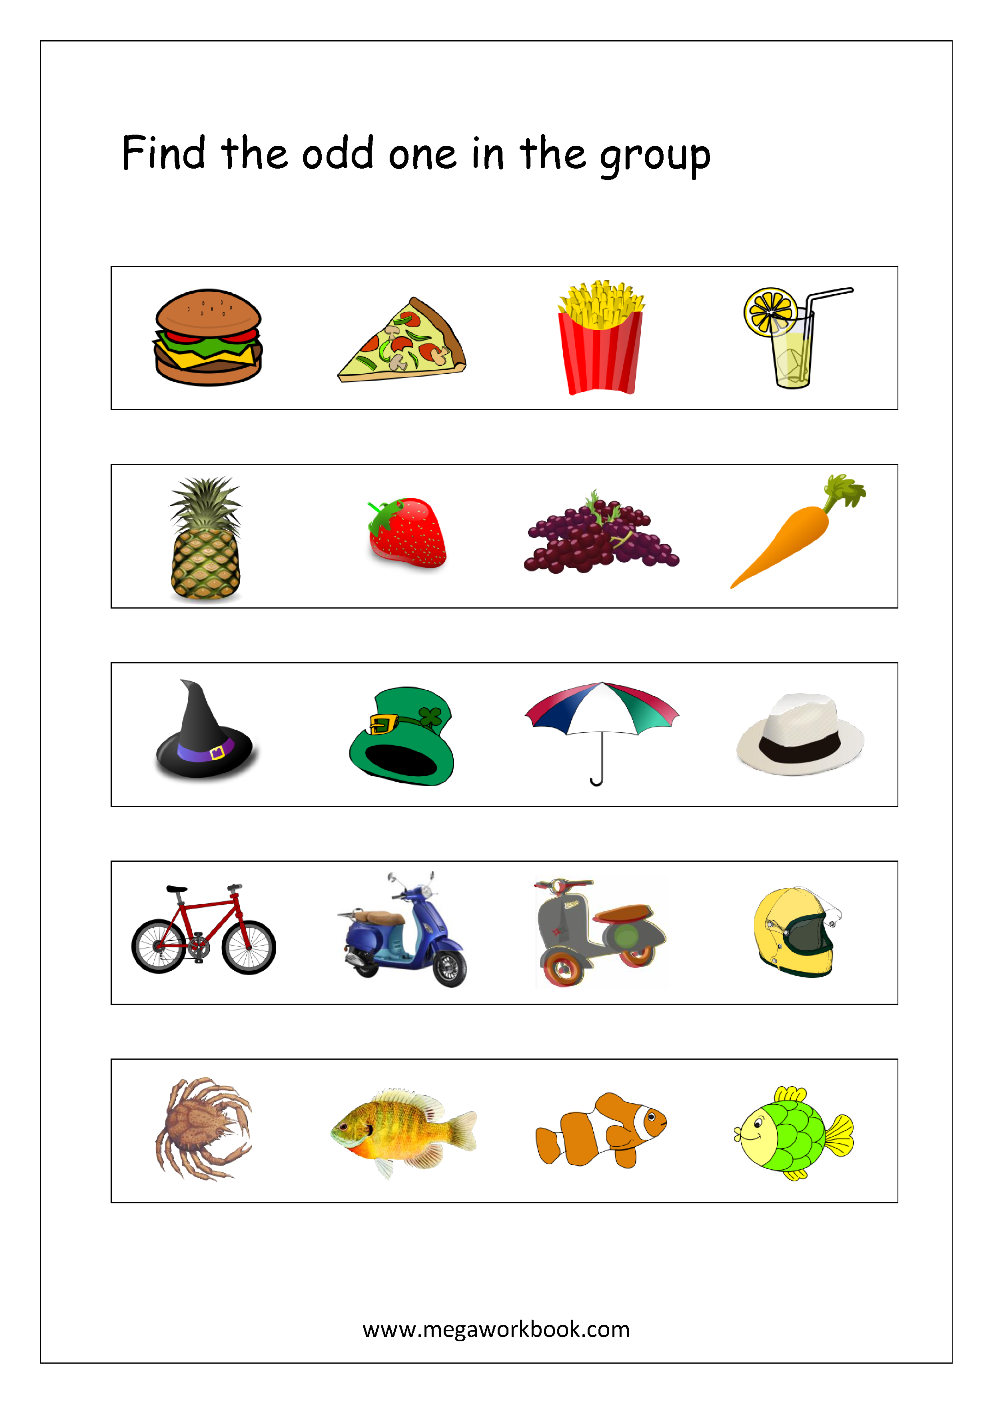 EYFS Children/'s Activity The odd one out